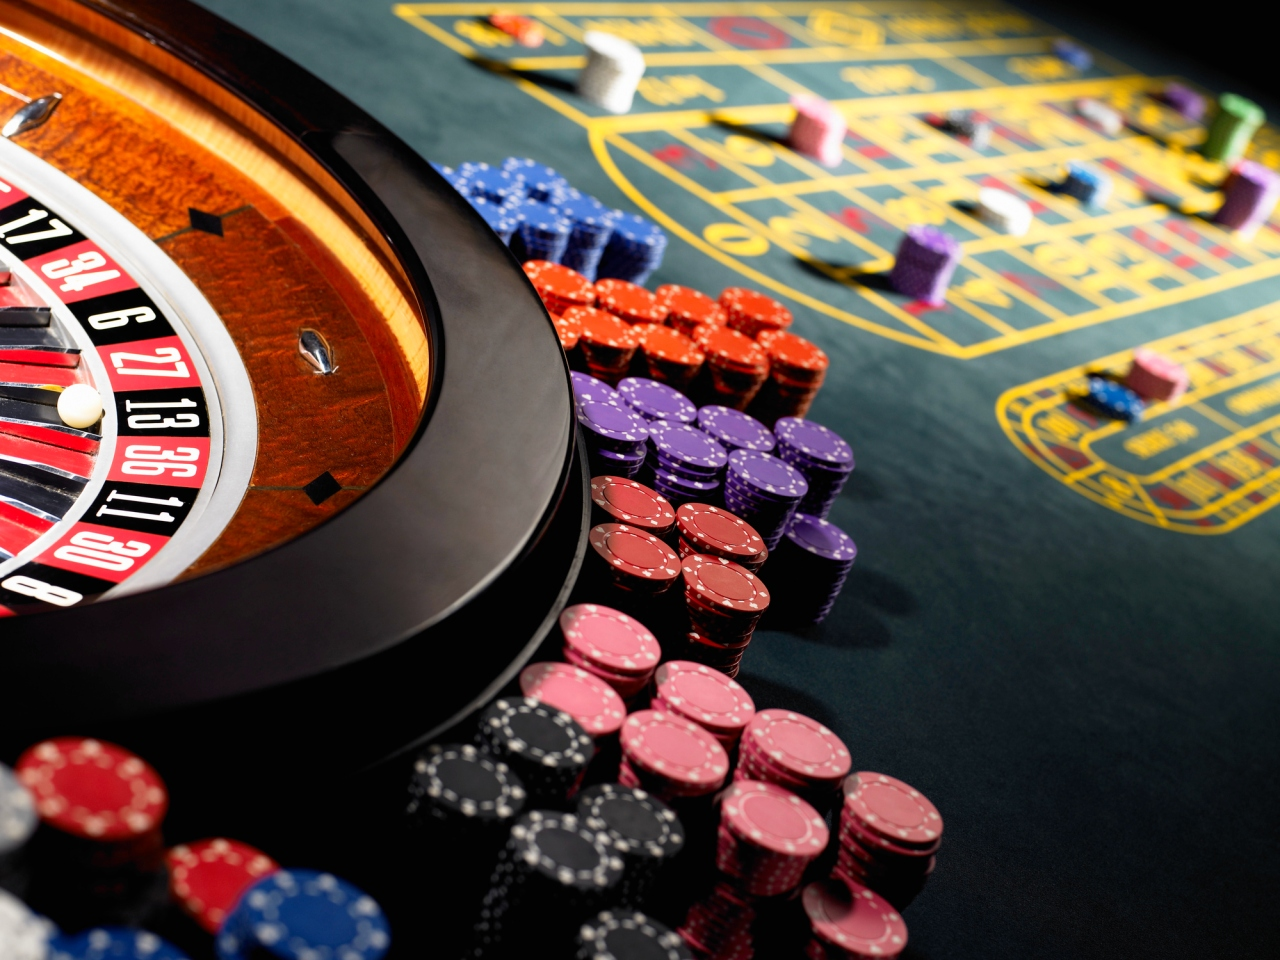 2 ex-state lawmakers appointed to Missouri Gaming Commission | FOX 2